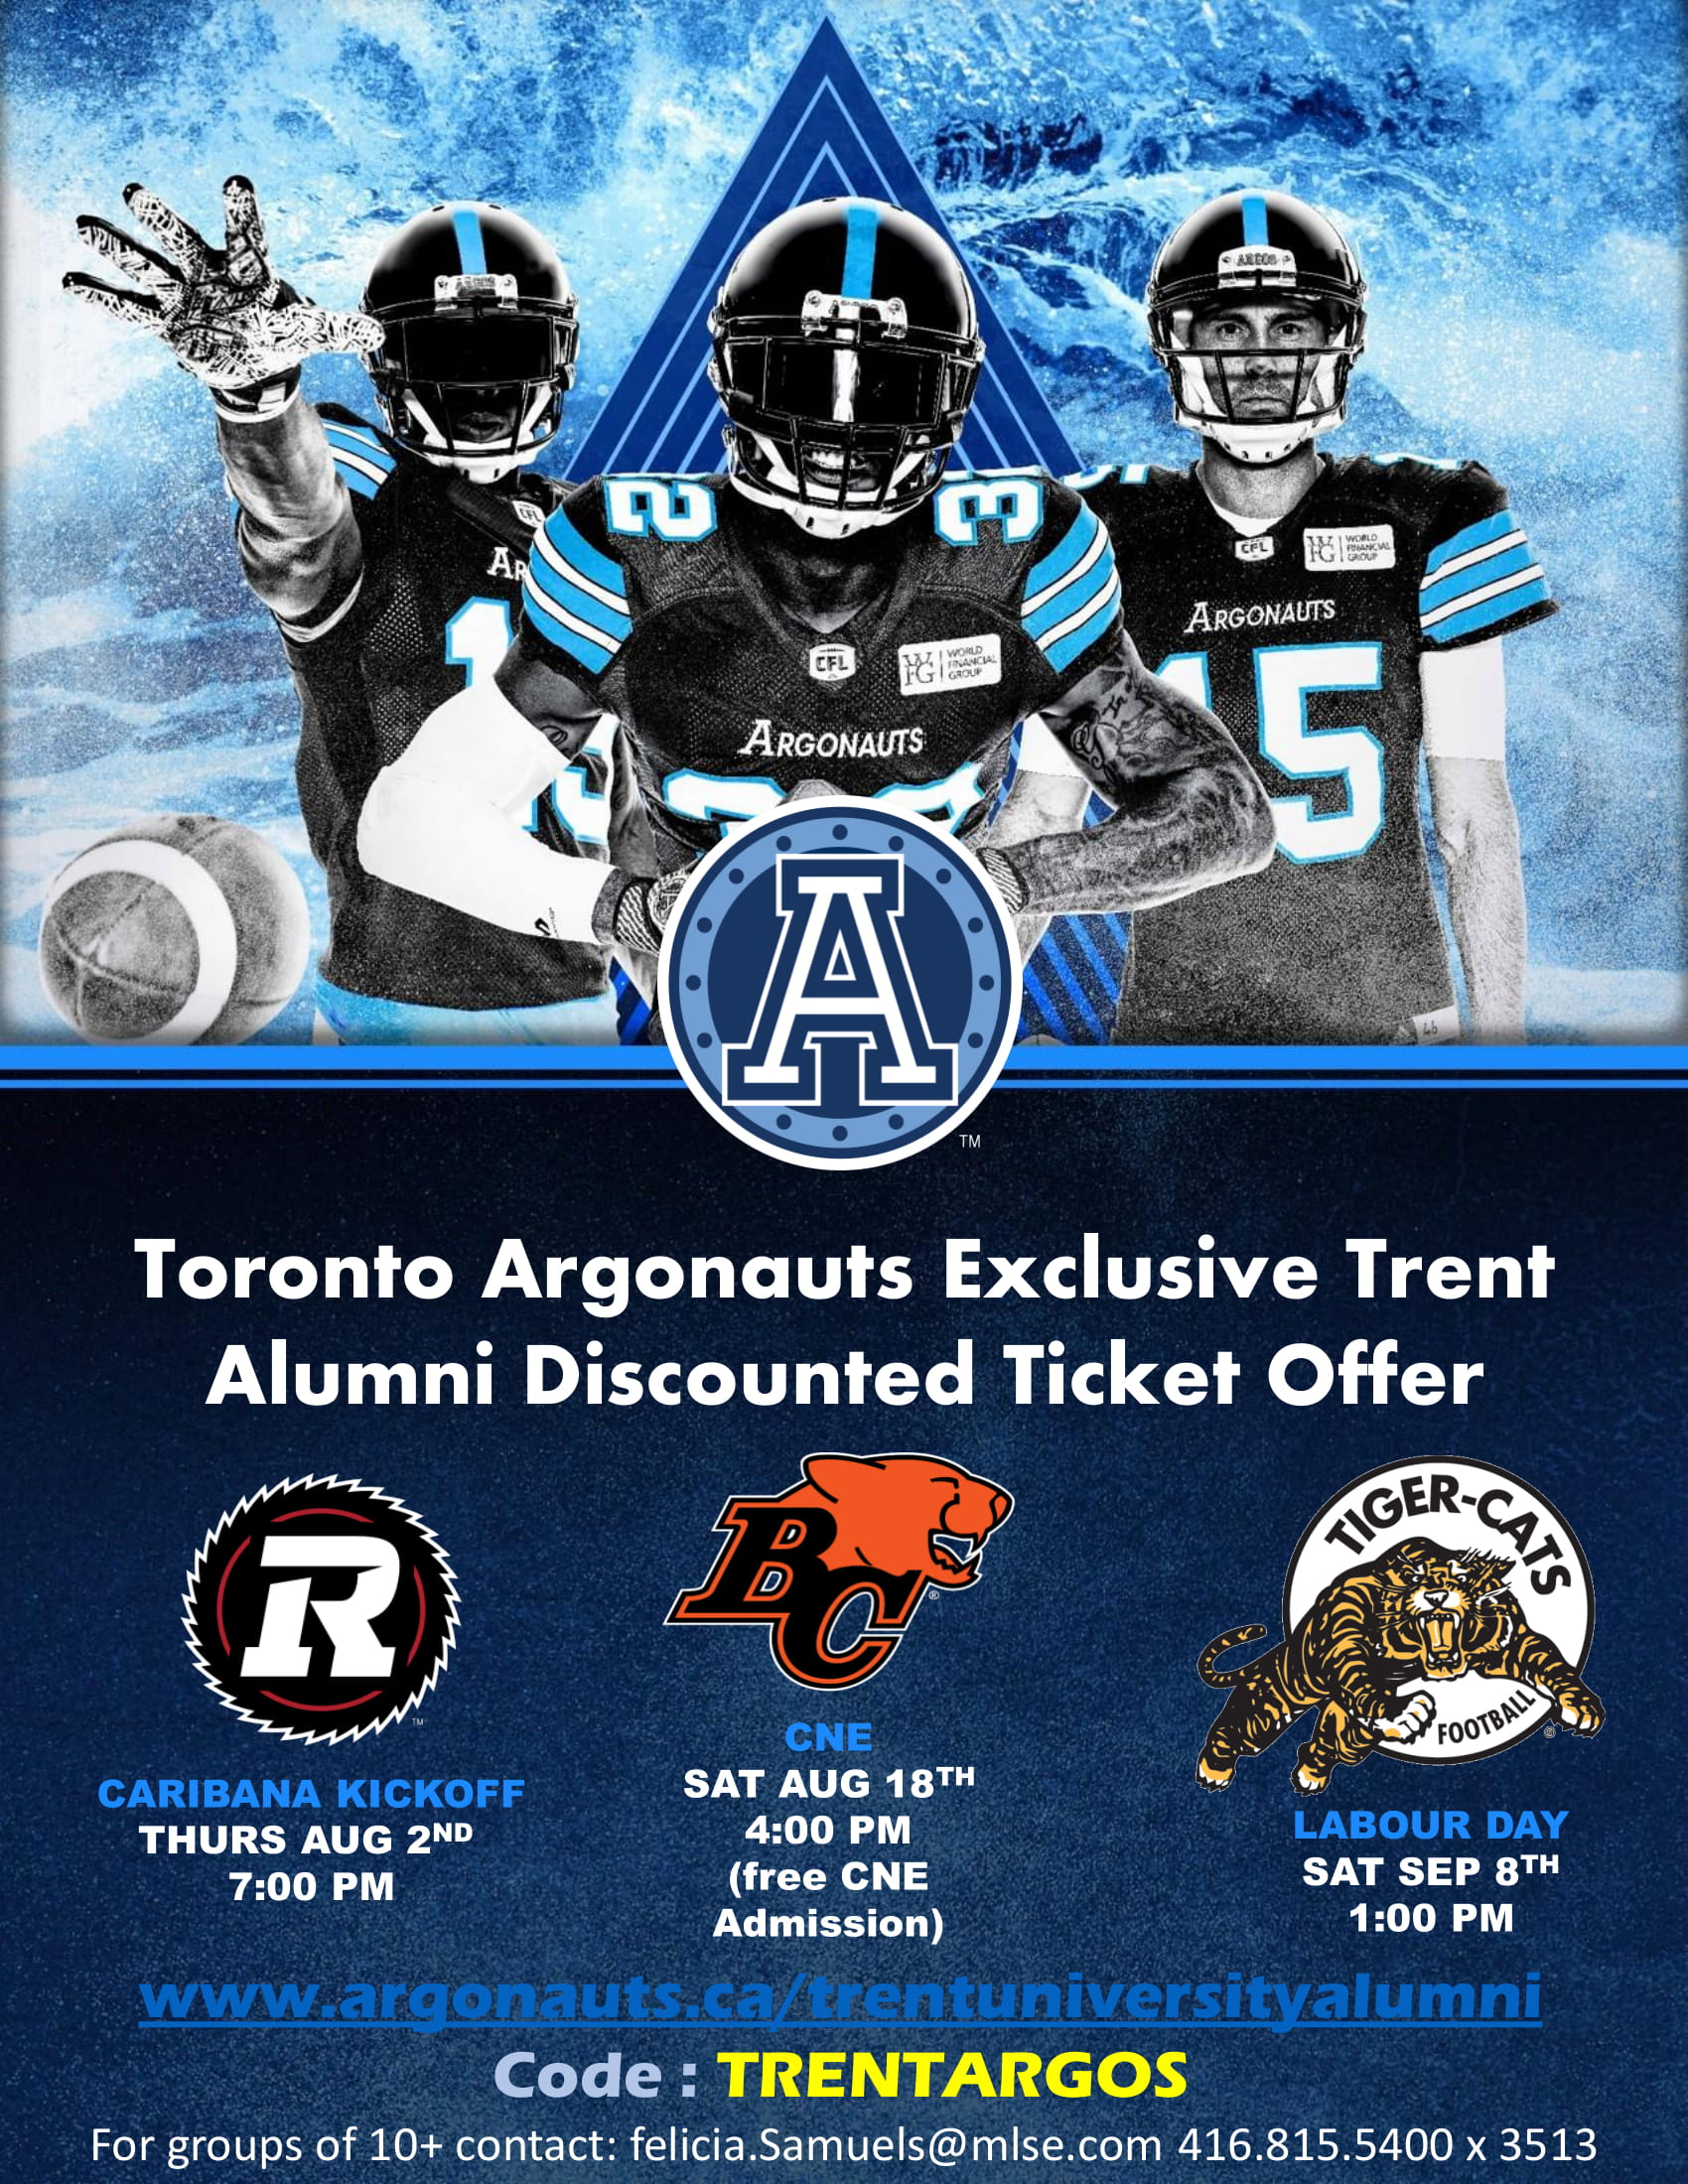 Use Promo Code: TRENTARGOS Toronto Argonauts Discounted Ticket Poster For  Trent U. Alumni 2018